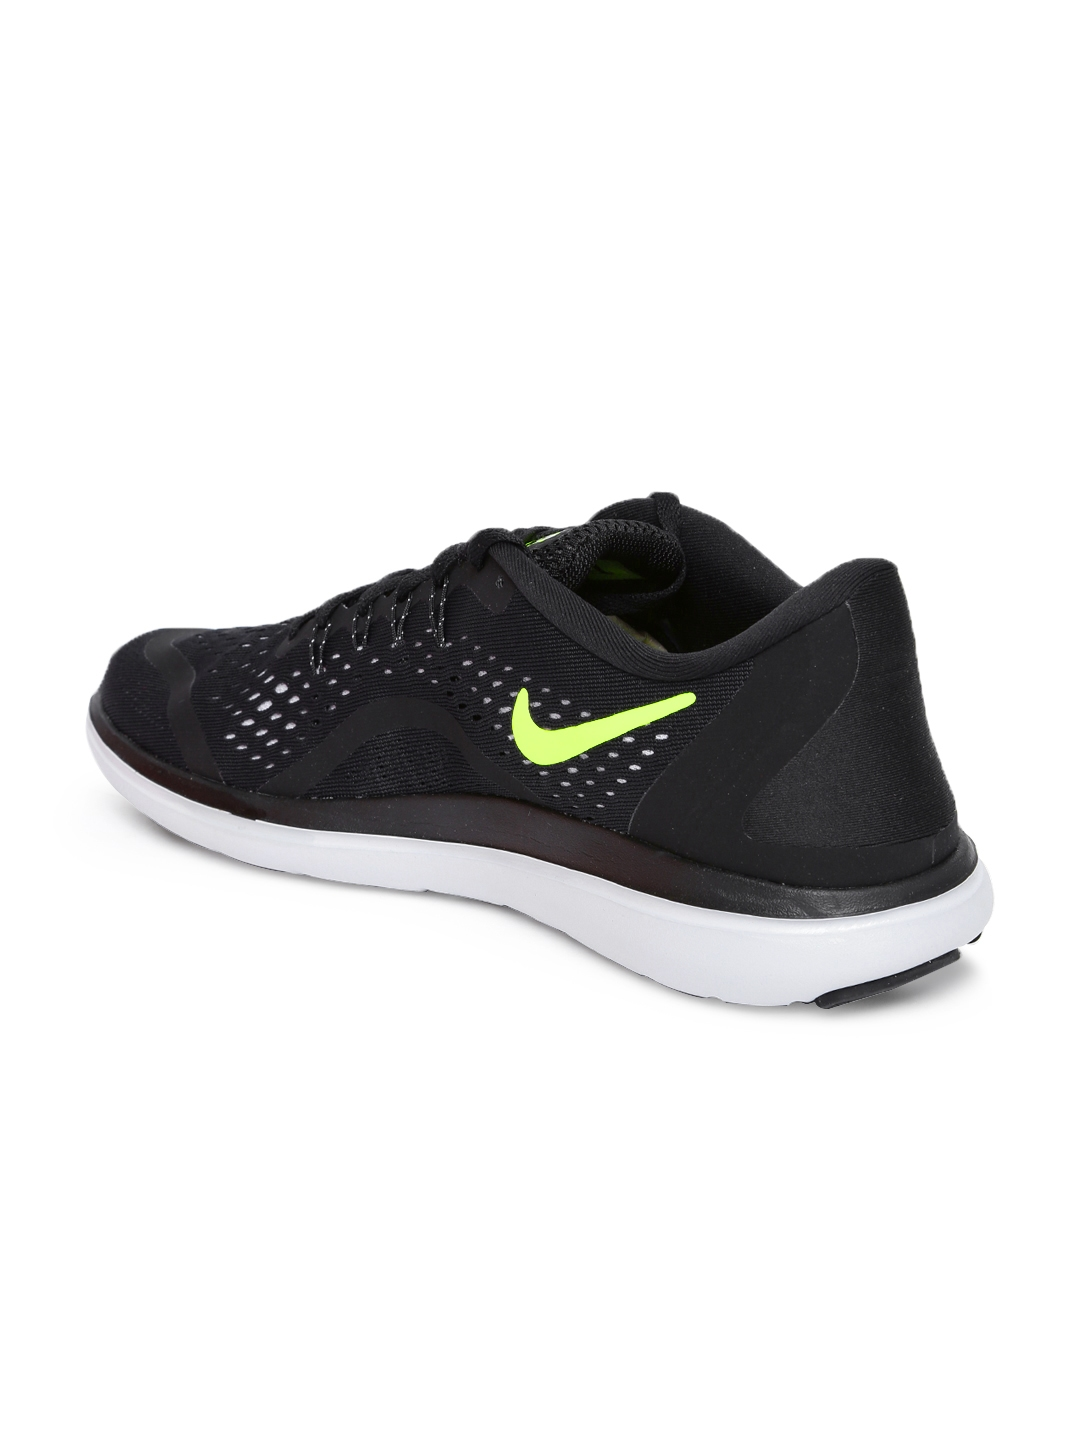 ad3c1a7118f21 Buy Nike Men Black FLEX 2017 RN Running Shoes - Sports Shoes for Men ...